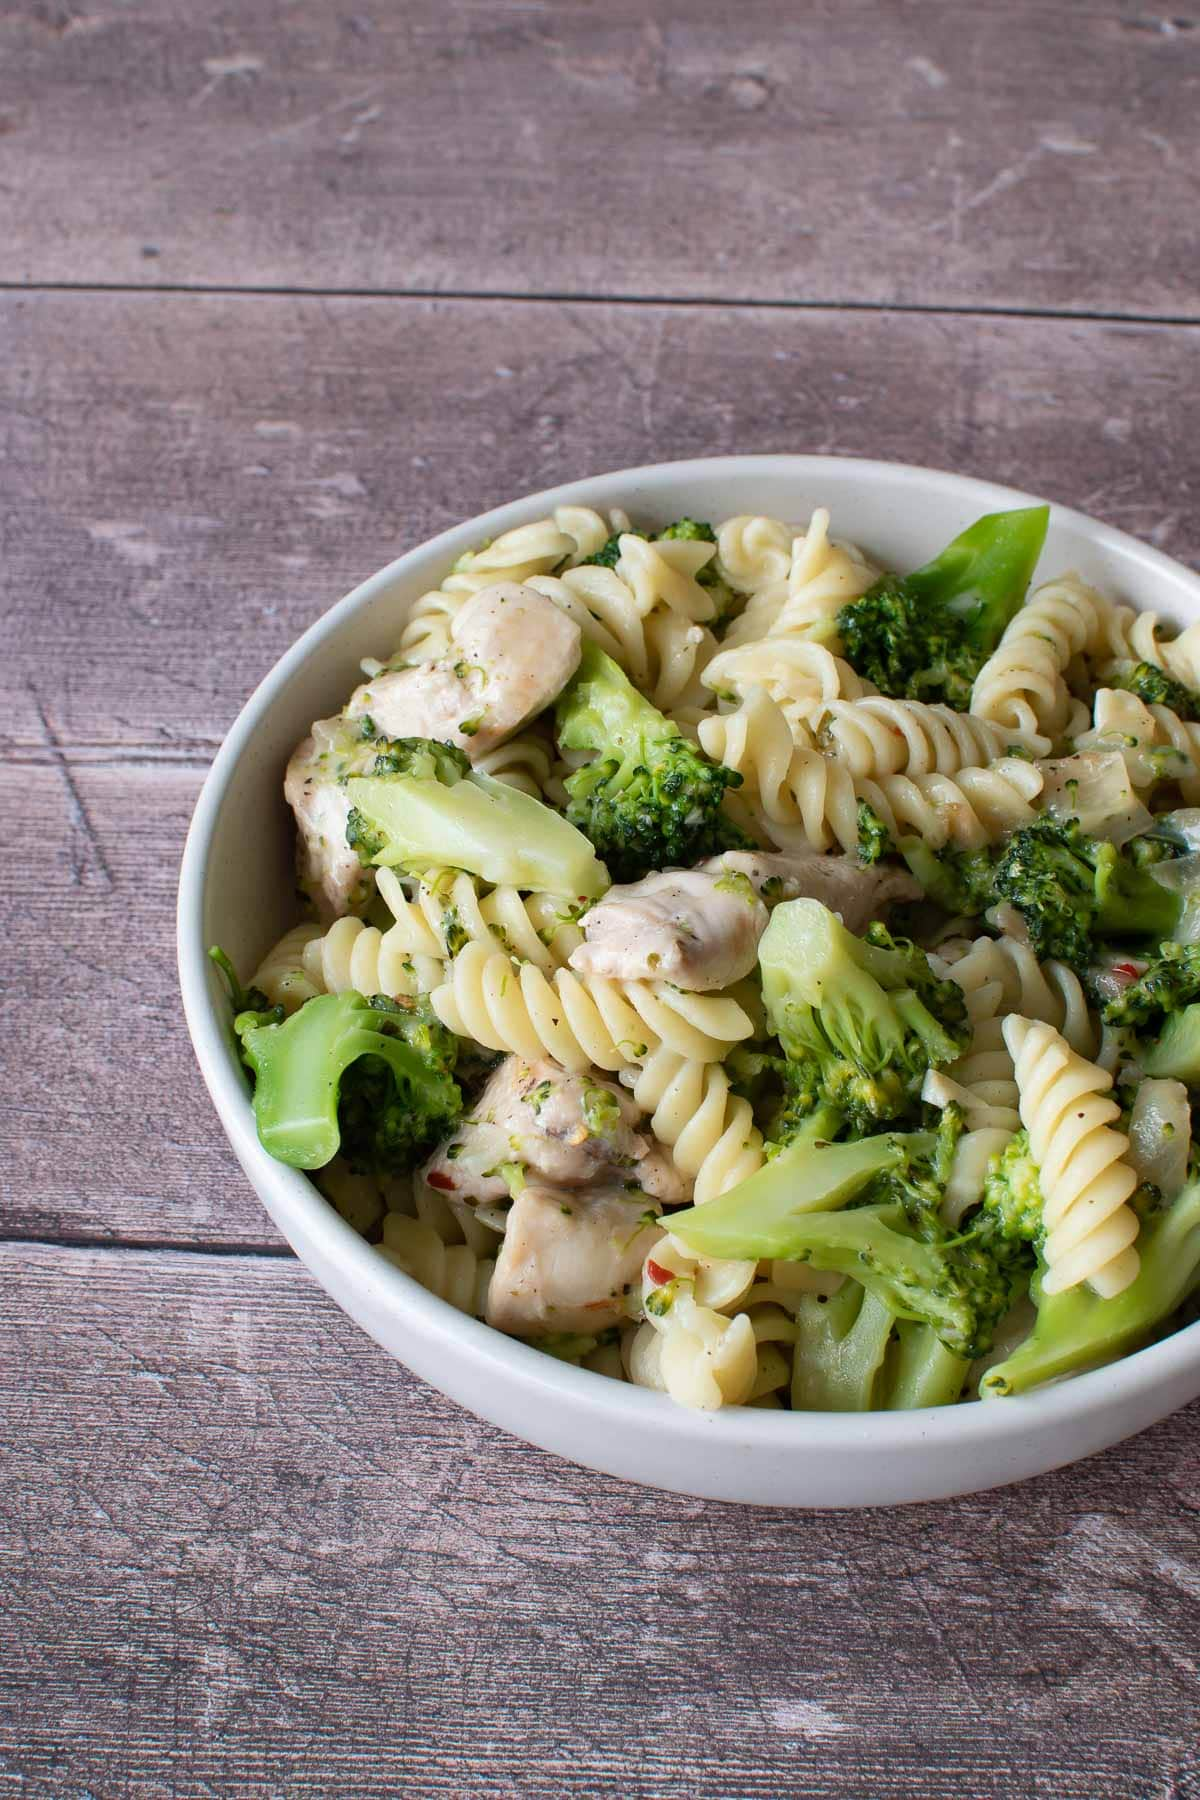 Pasta with chicken and broccoli in a bowl.